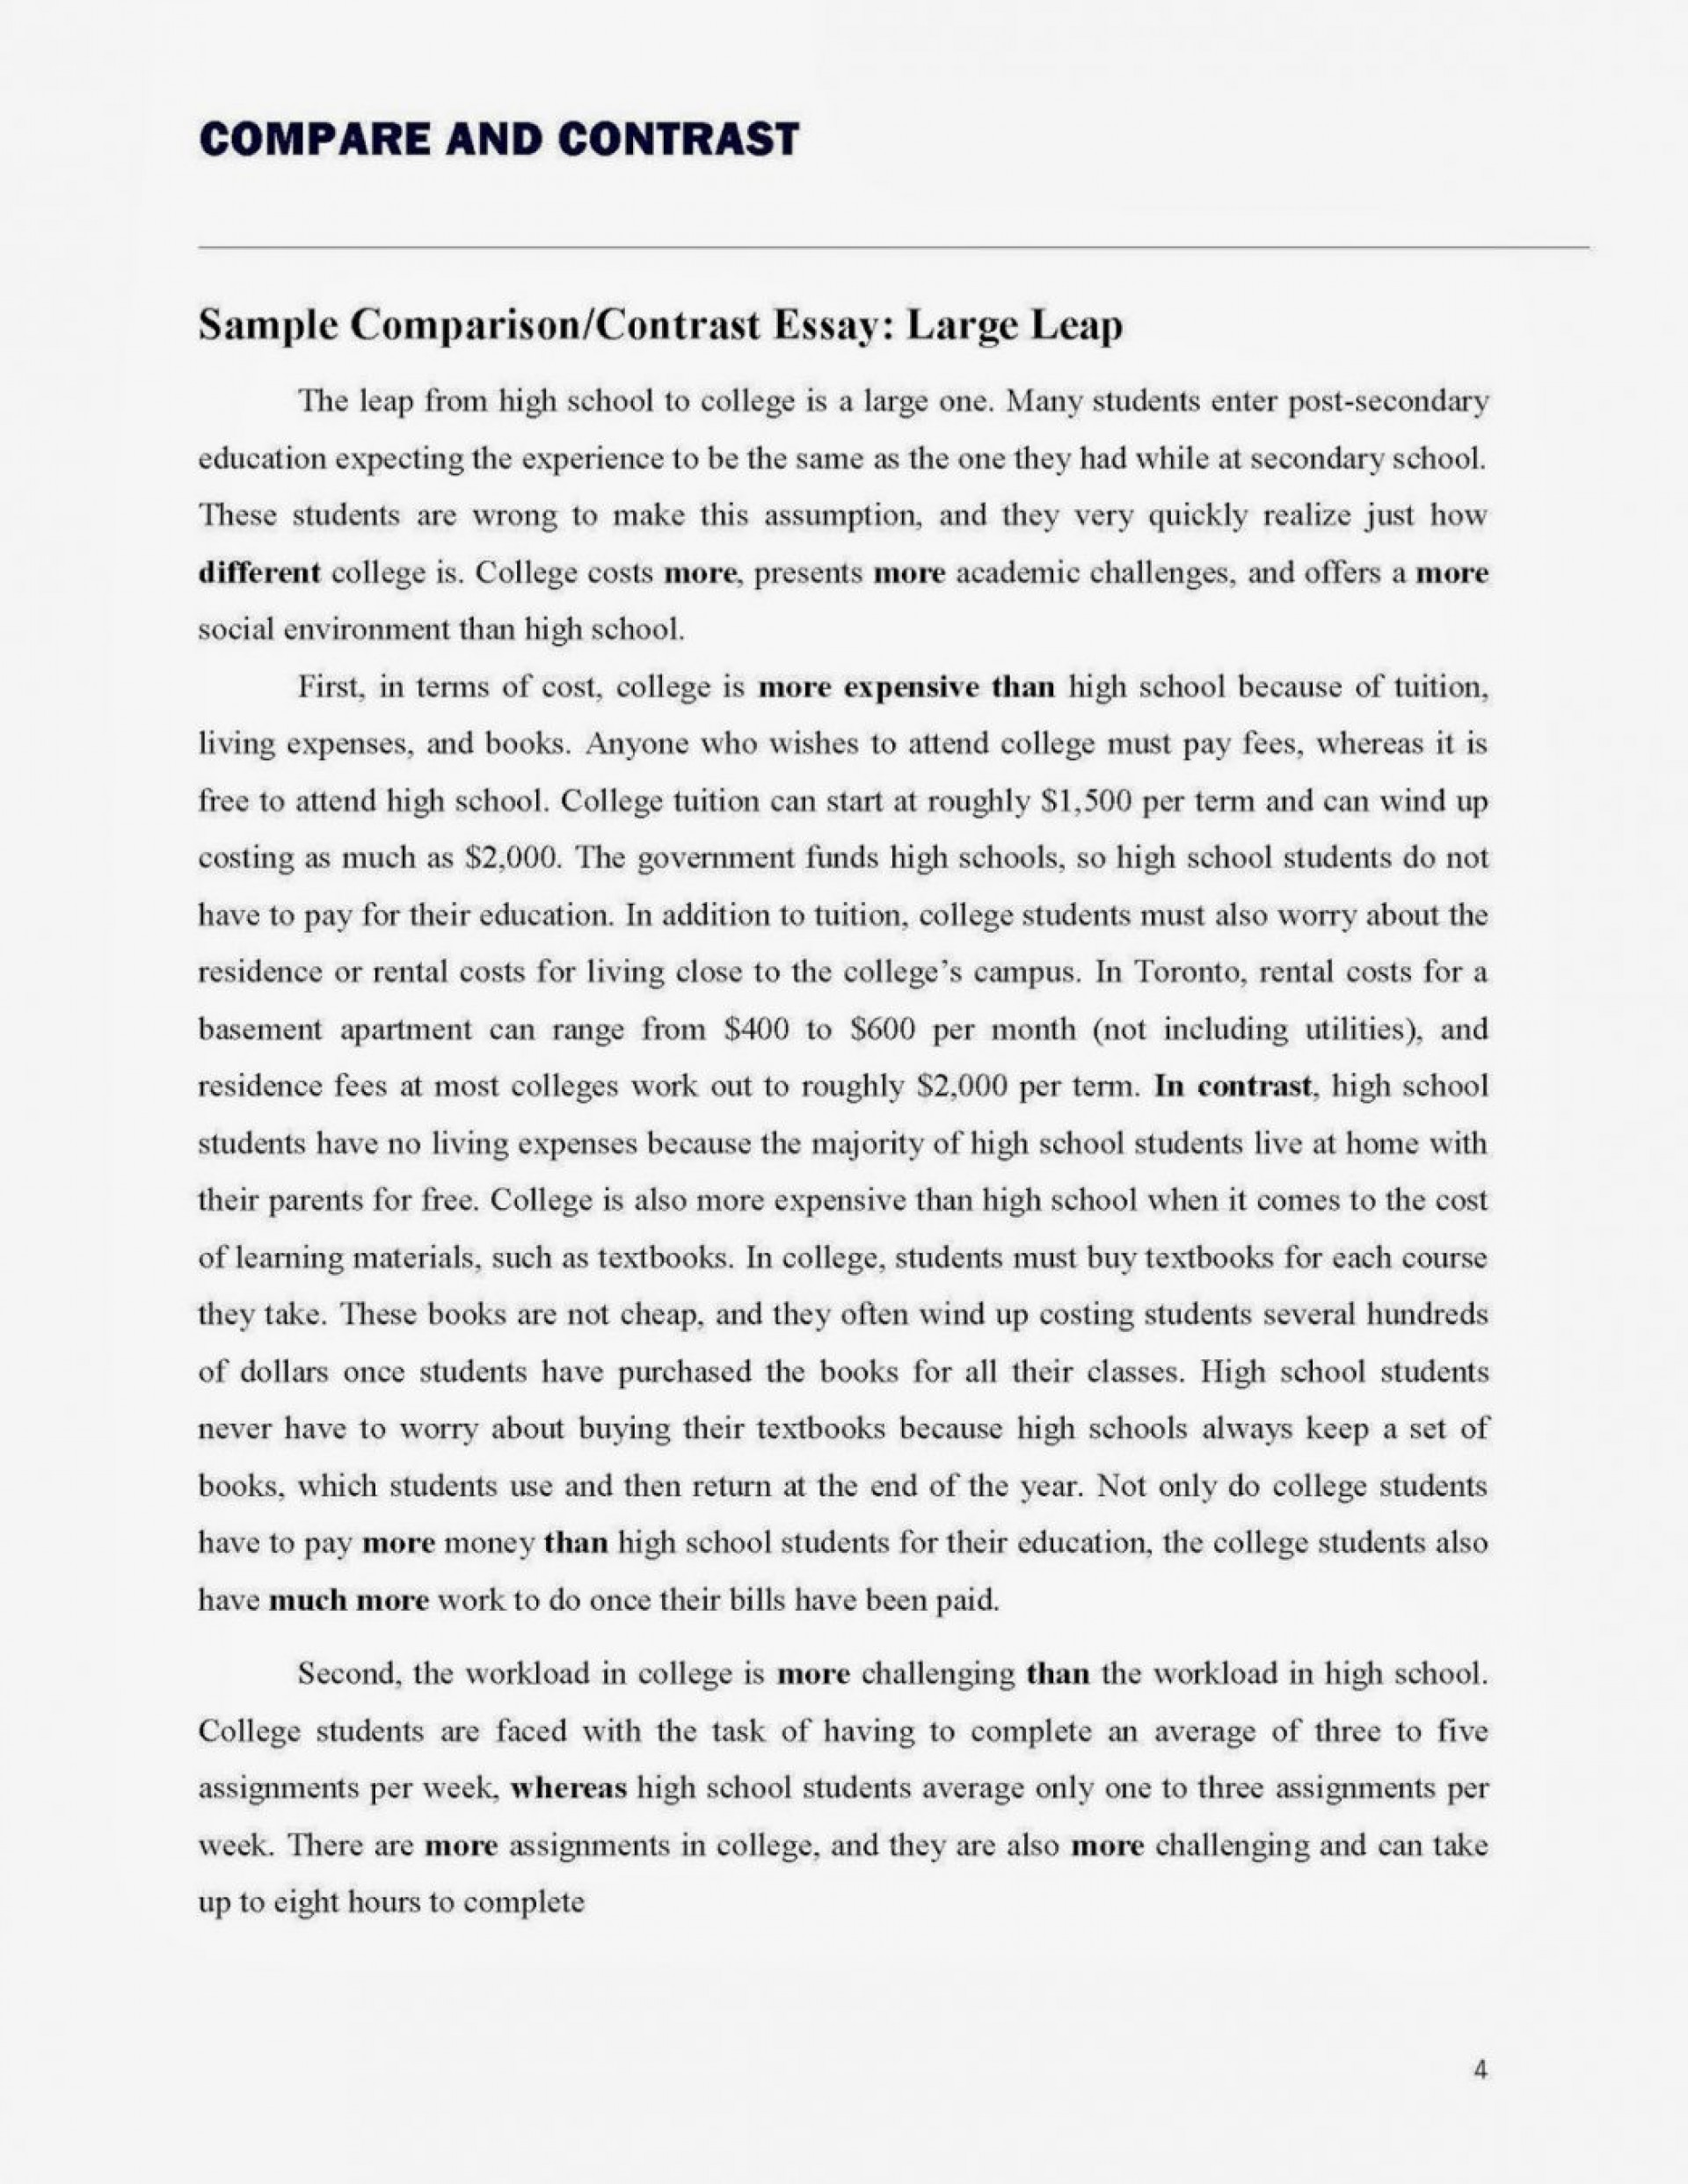 008 Synthesis Essay Prompt Example Compare Contrast Prompts How To Write Ou Do You Good Thesis Introduction For Ap English I Conclusion Outline Lang Fearsome 2017 Locavore Examples 1920